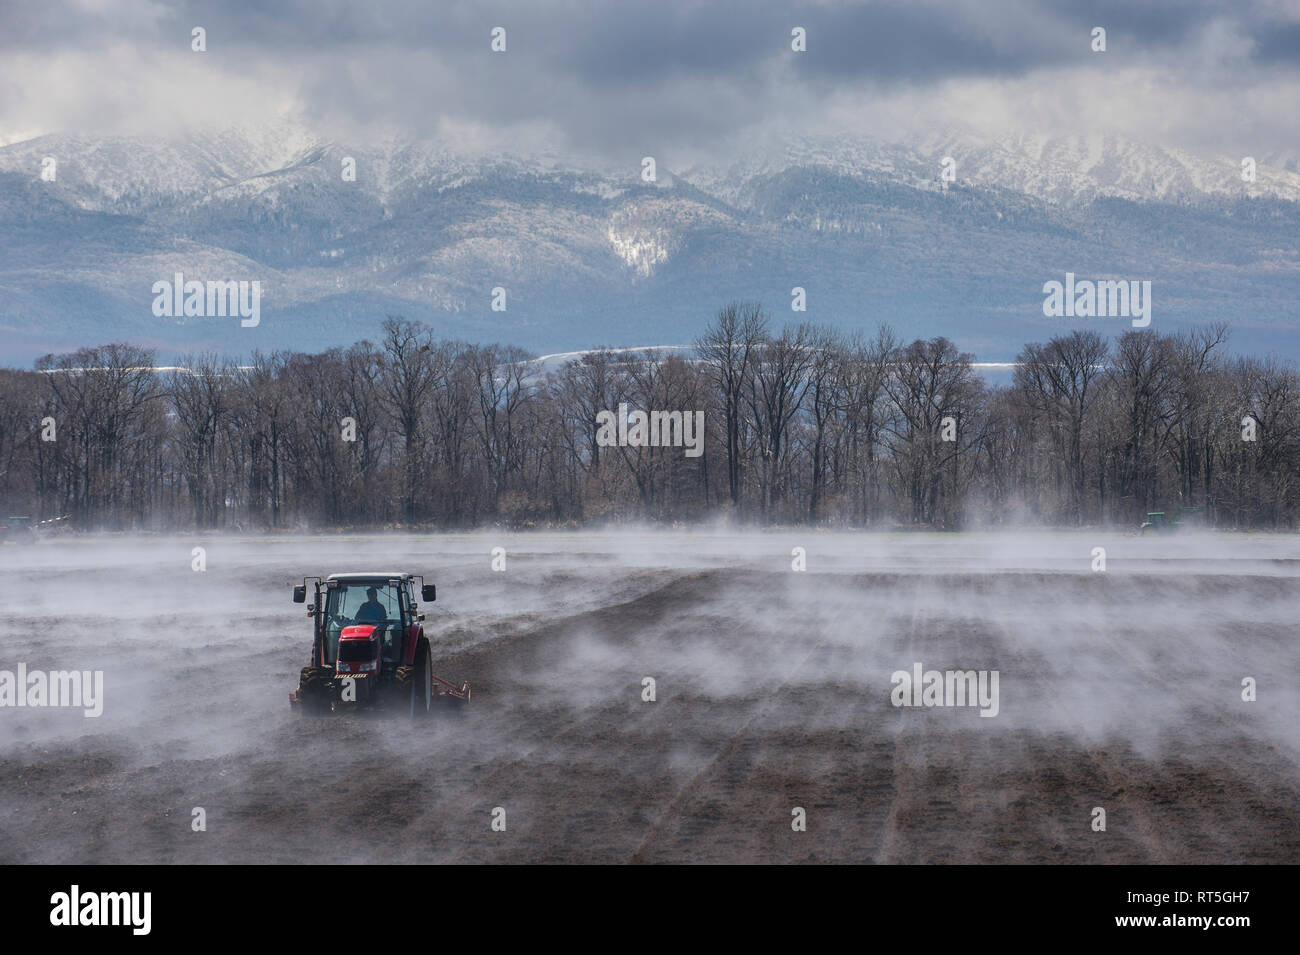 Hokkaido, Tractor seeding a field while it is vaporating from the warm ground - Stock Image